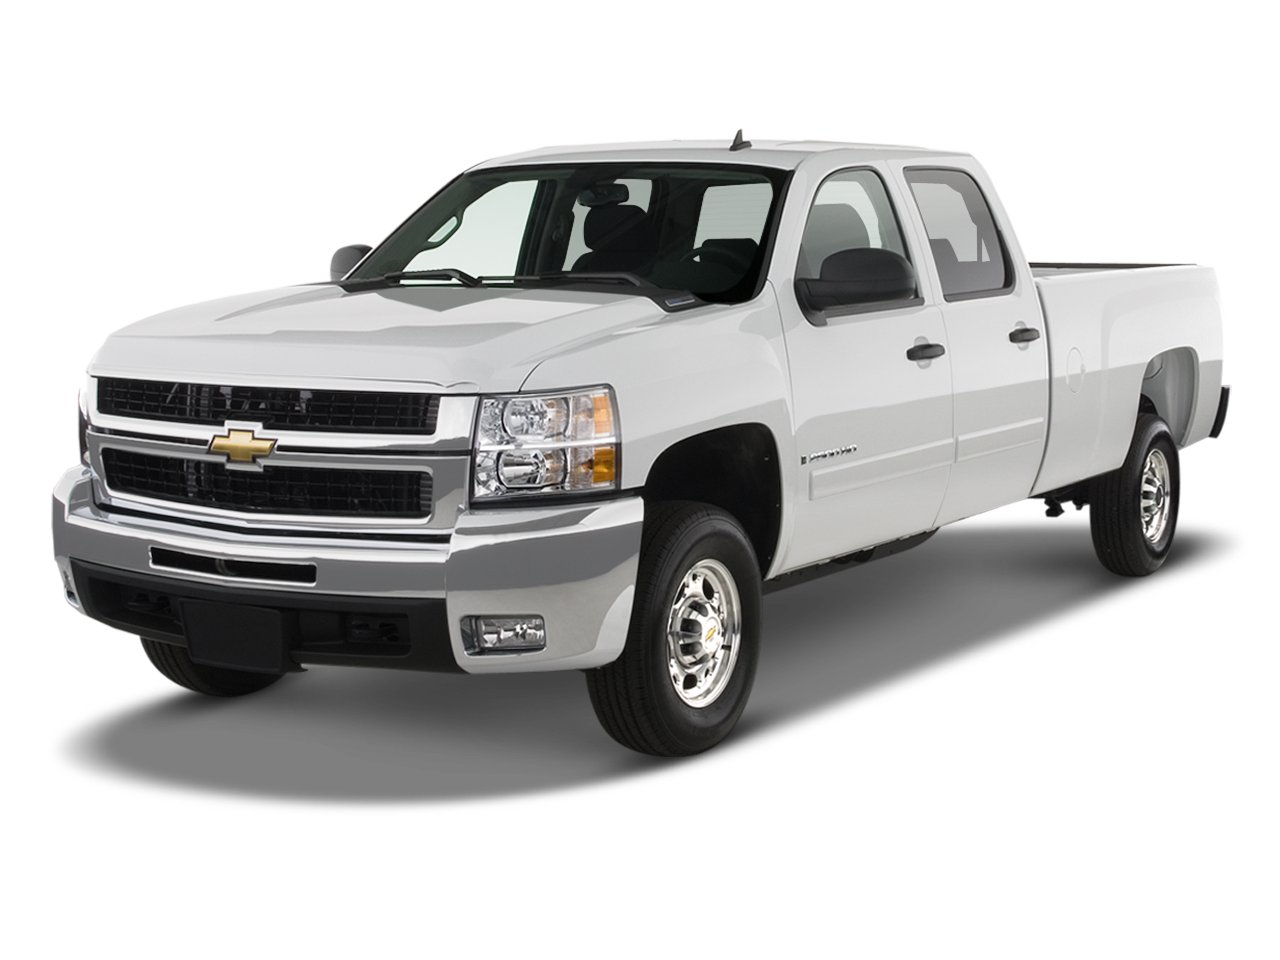 Used 2008 Chevy 2500 Cincinnati OH